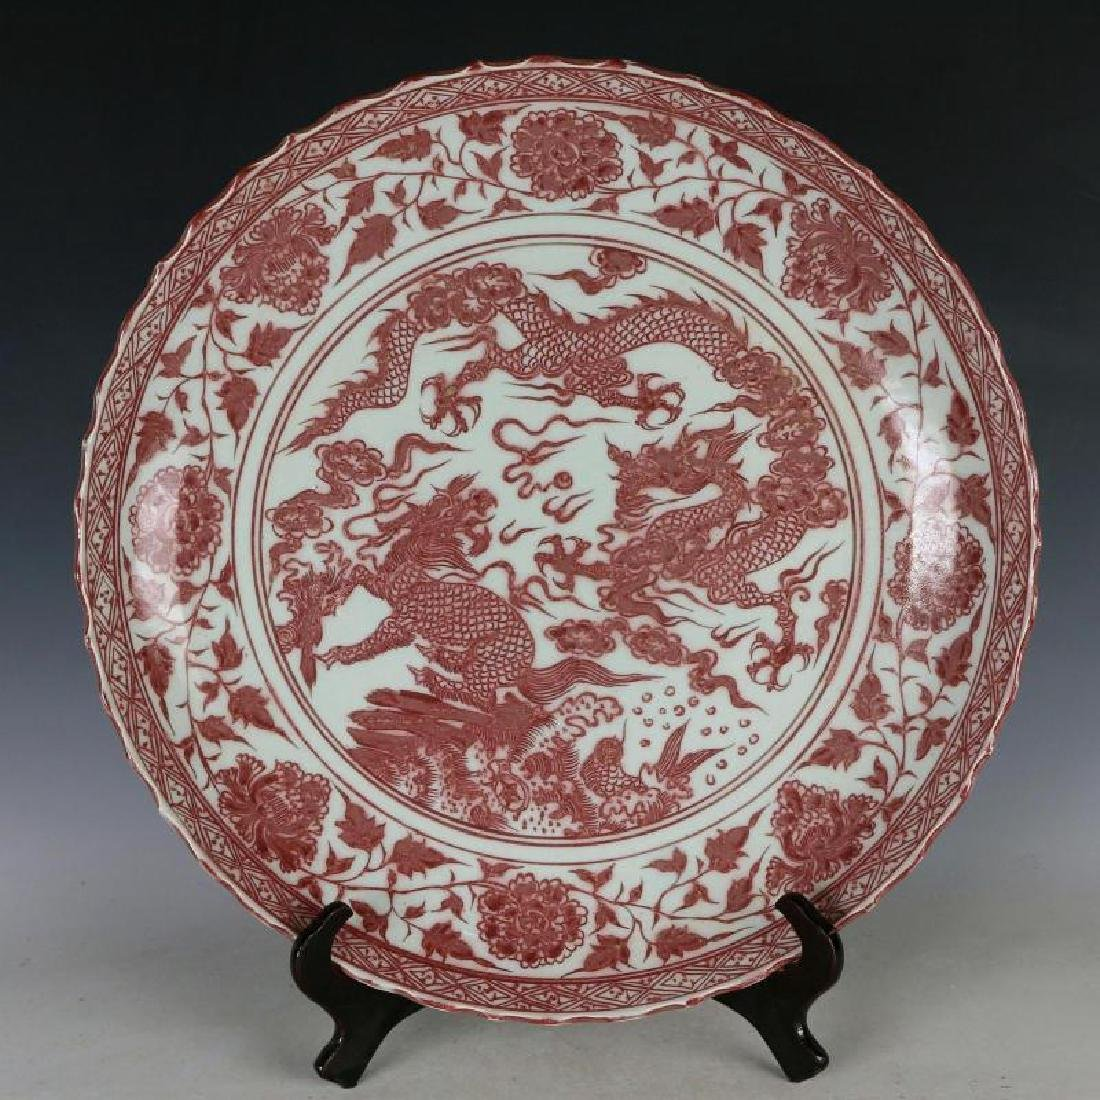 A Big Underglaxze Red Dragon and Kilin Porcelain Plate